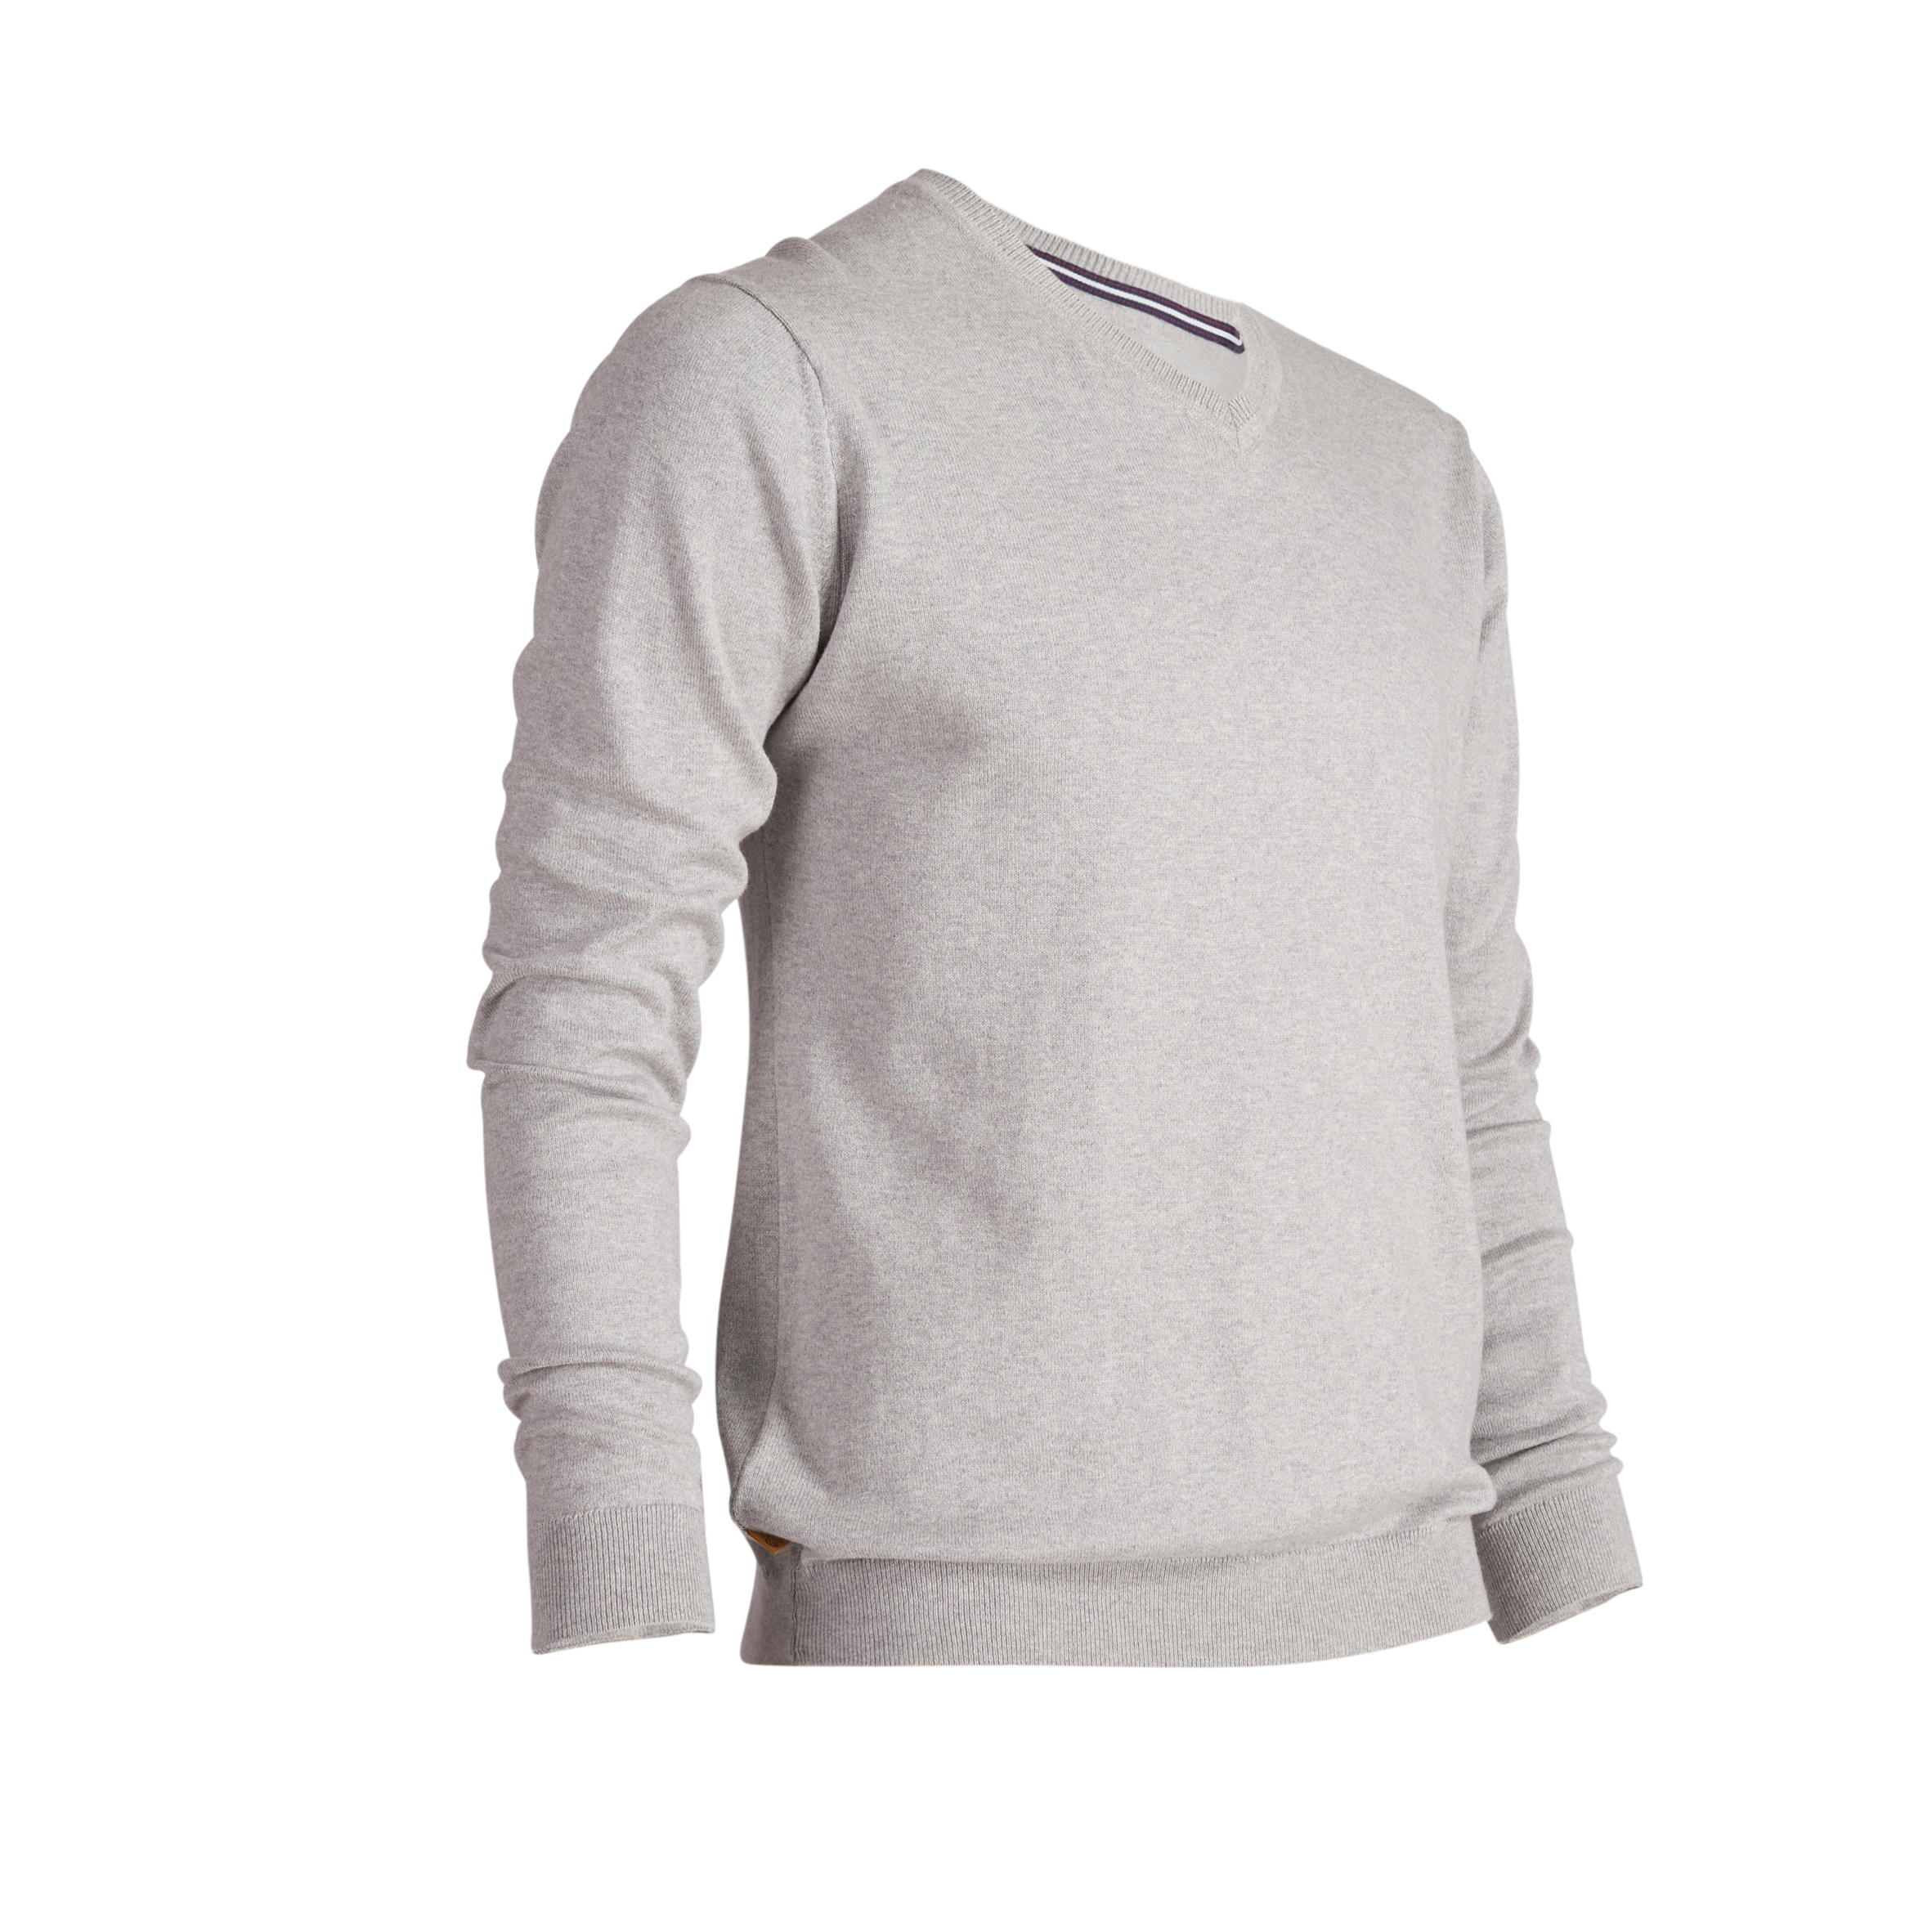 CHANDAIL GOLF HOMME 500 GRIS chiné